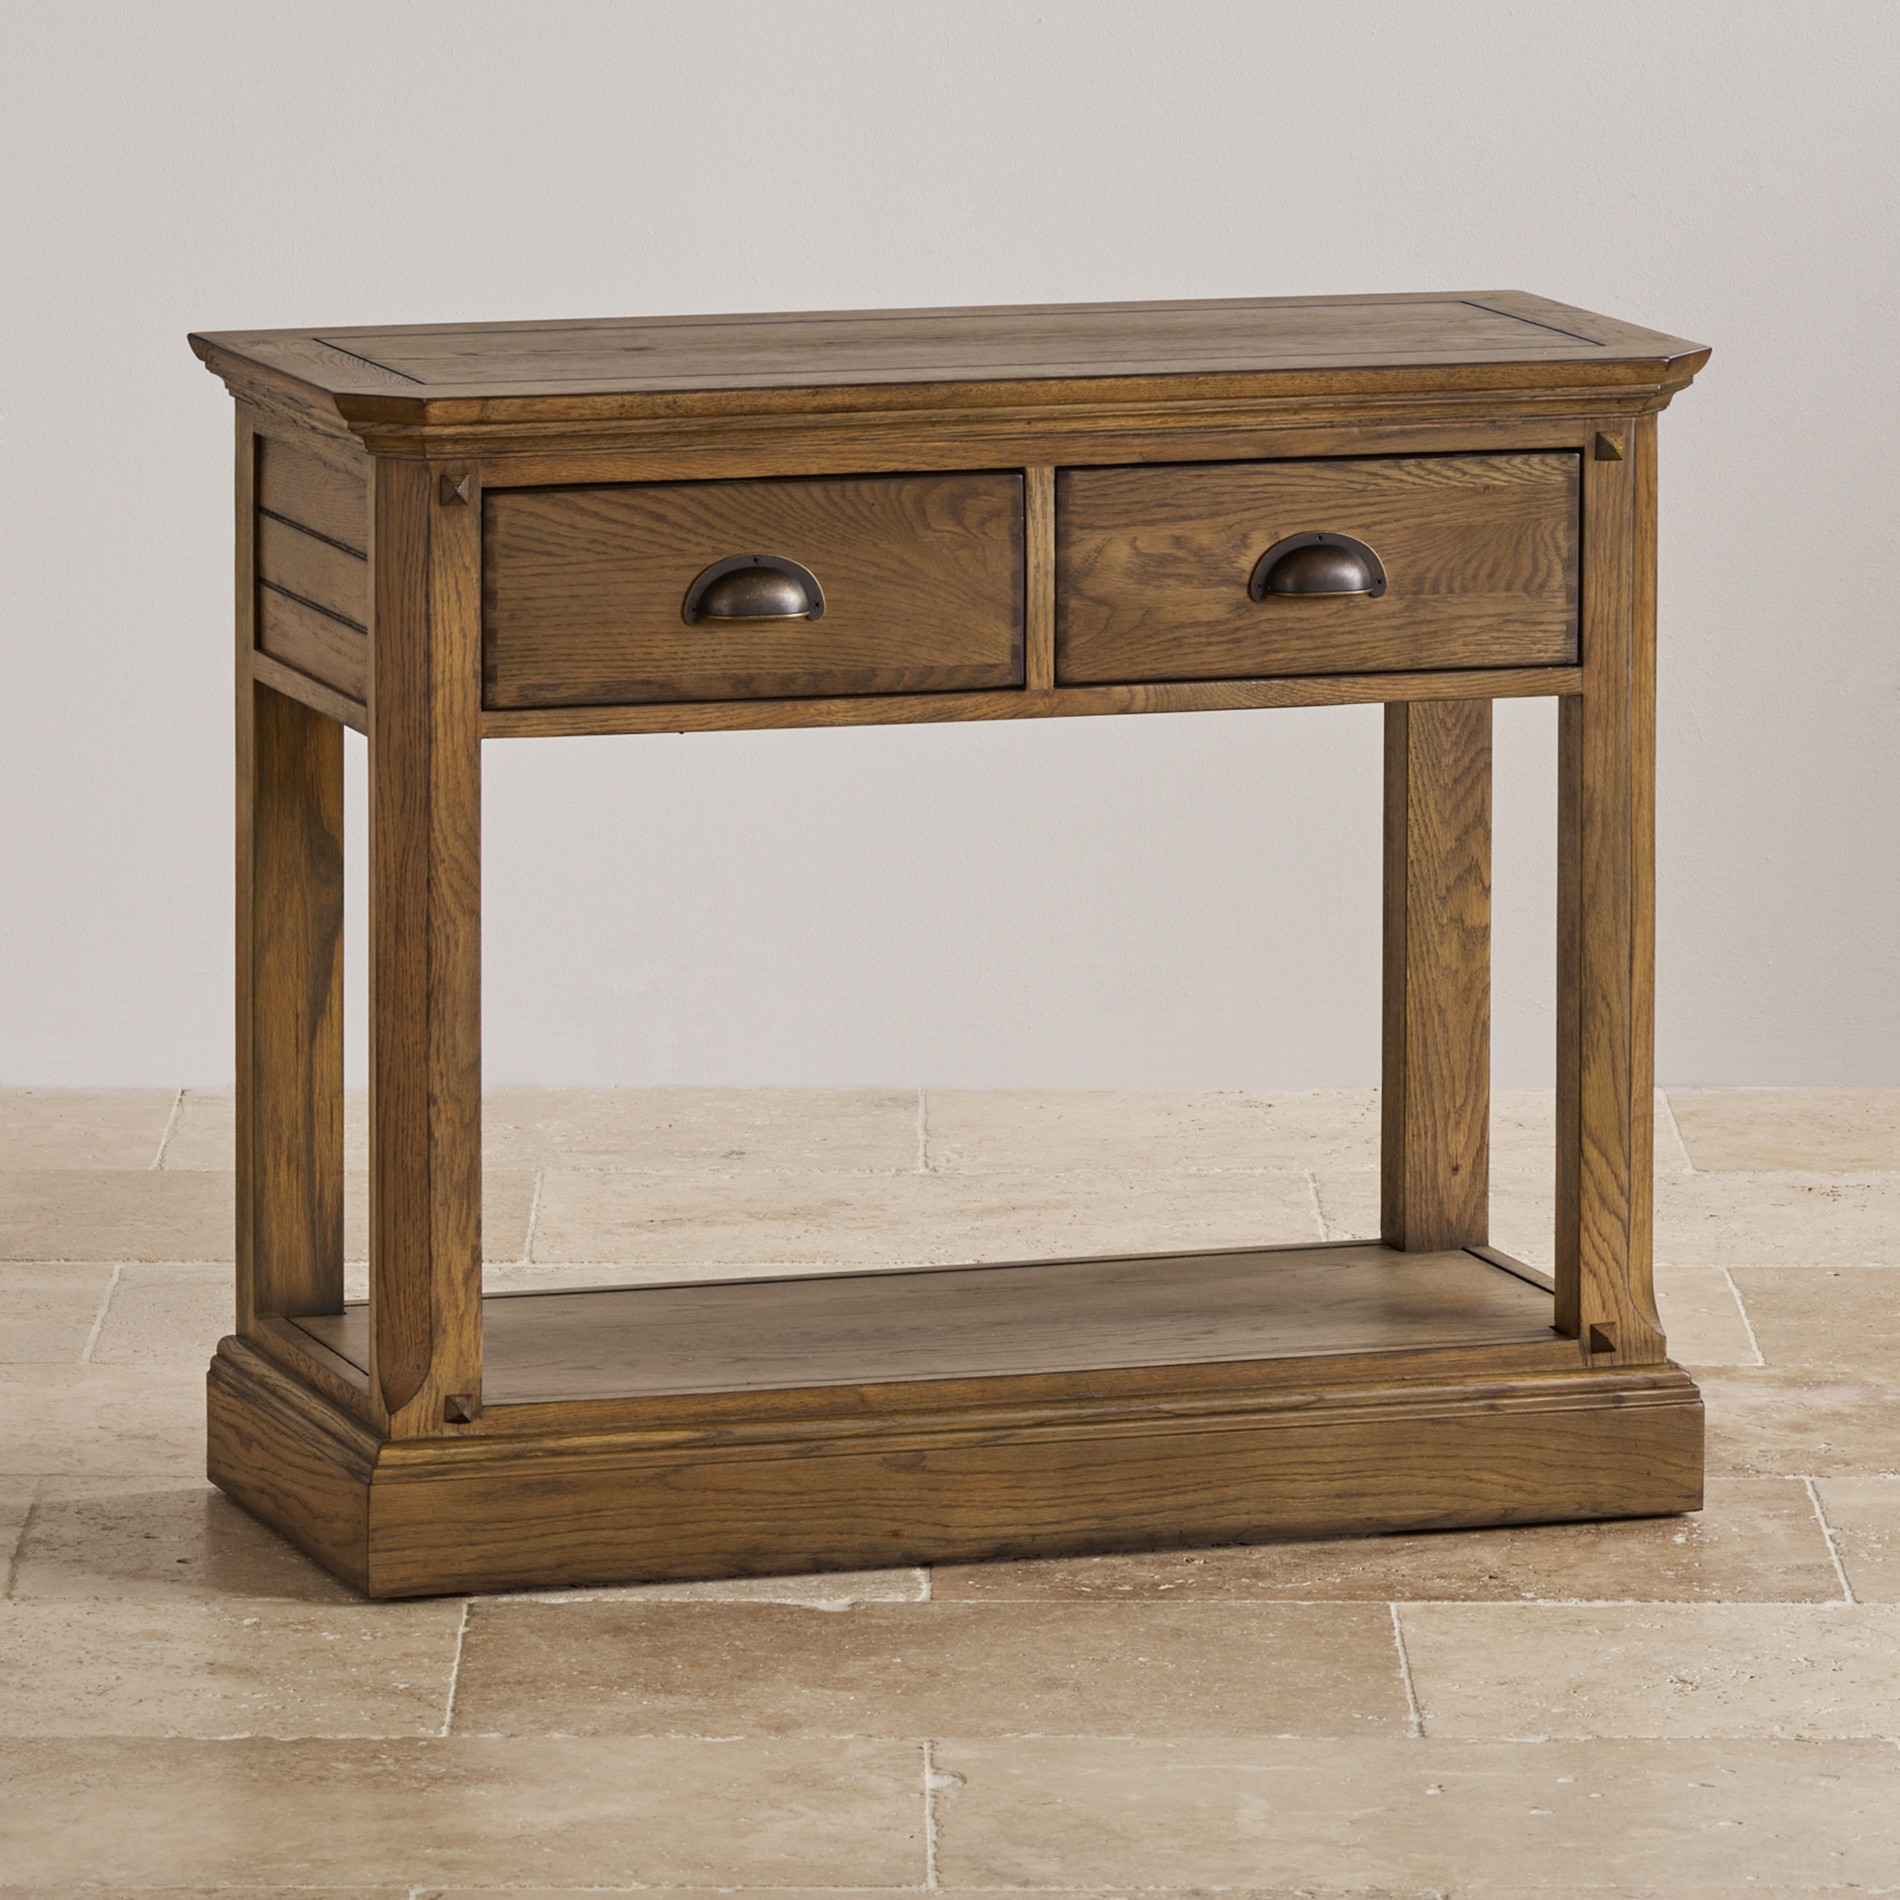 Manor House Console Table in Solid Oak